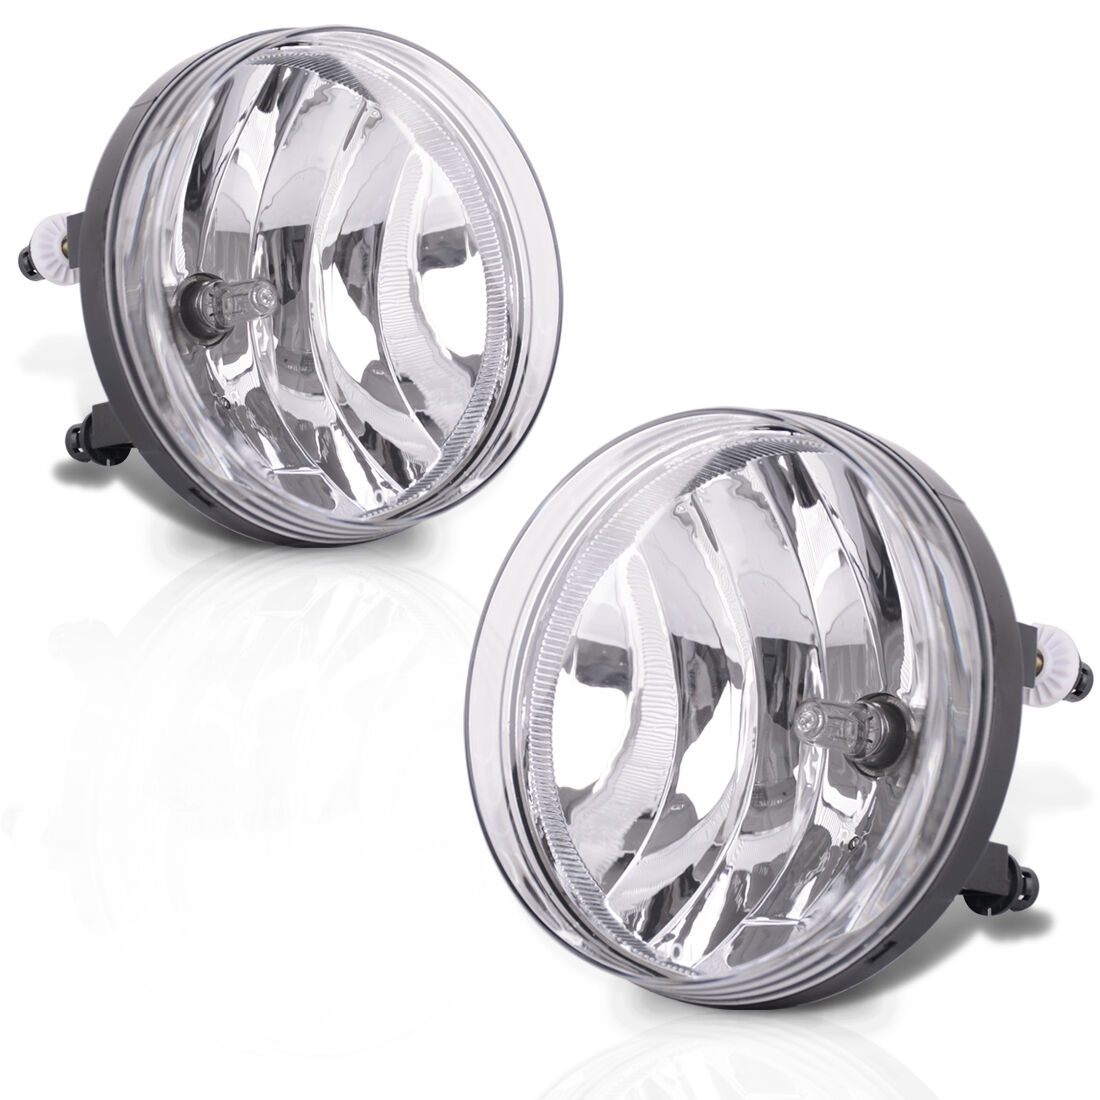 For 2007-2013 Gmc Sierra Clear Front Bumper Fog Lights Driving Lamp With Bulbs Pair Gm2592161 / Gm2593161